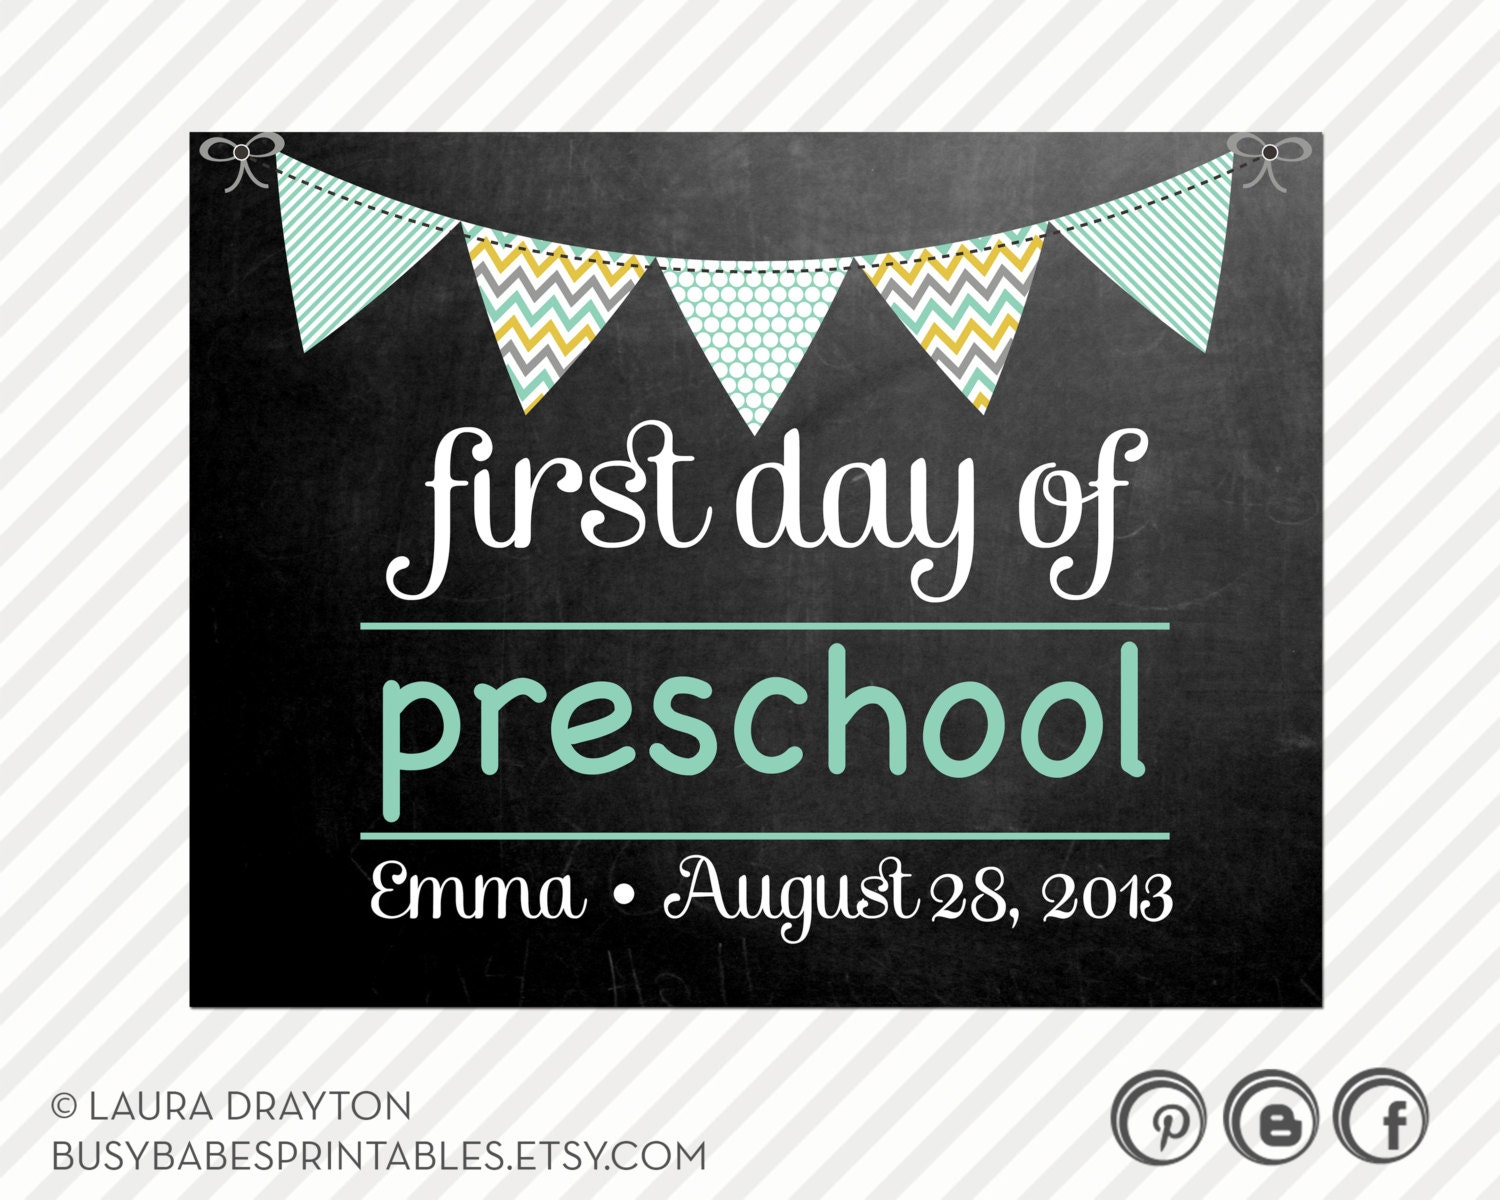 First Day of Preschool / School Signs - Personalization Option ...